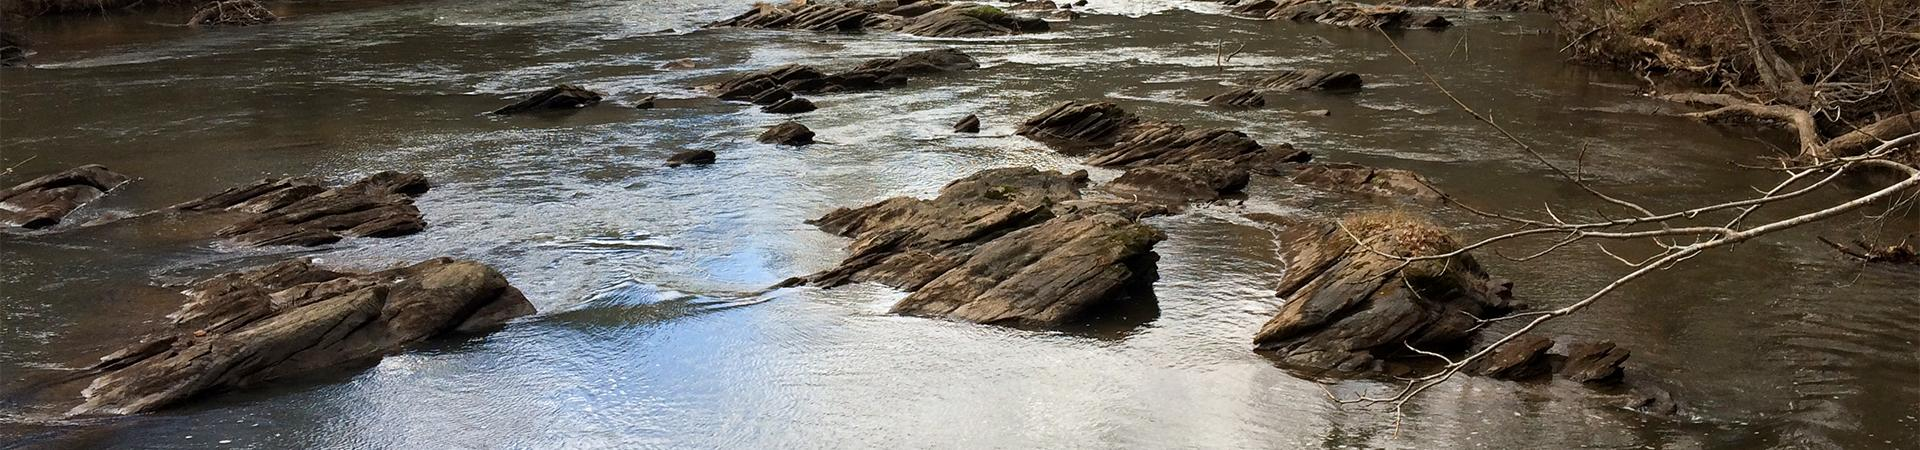 rocks in a river on Mcgraw Ford WMA